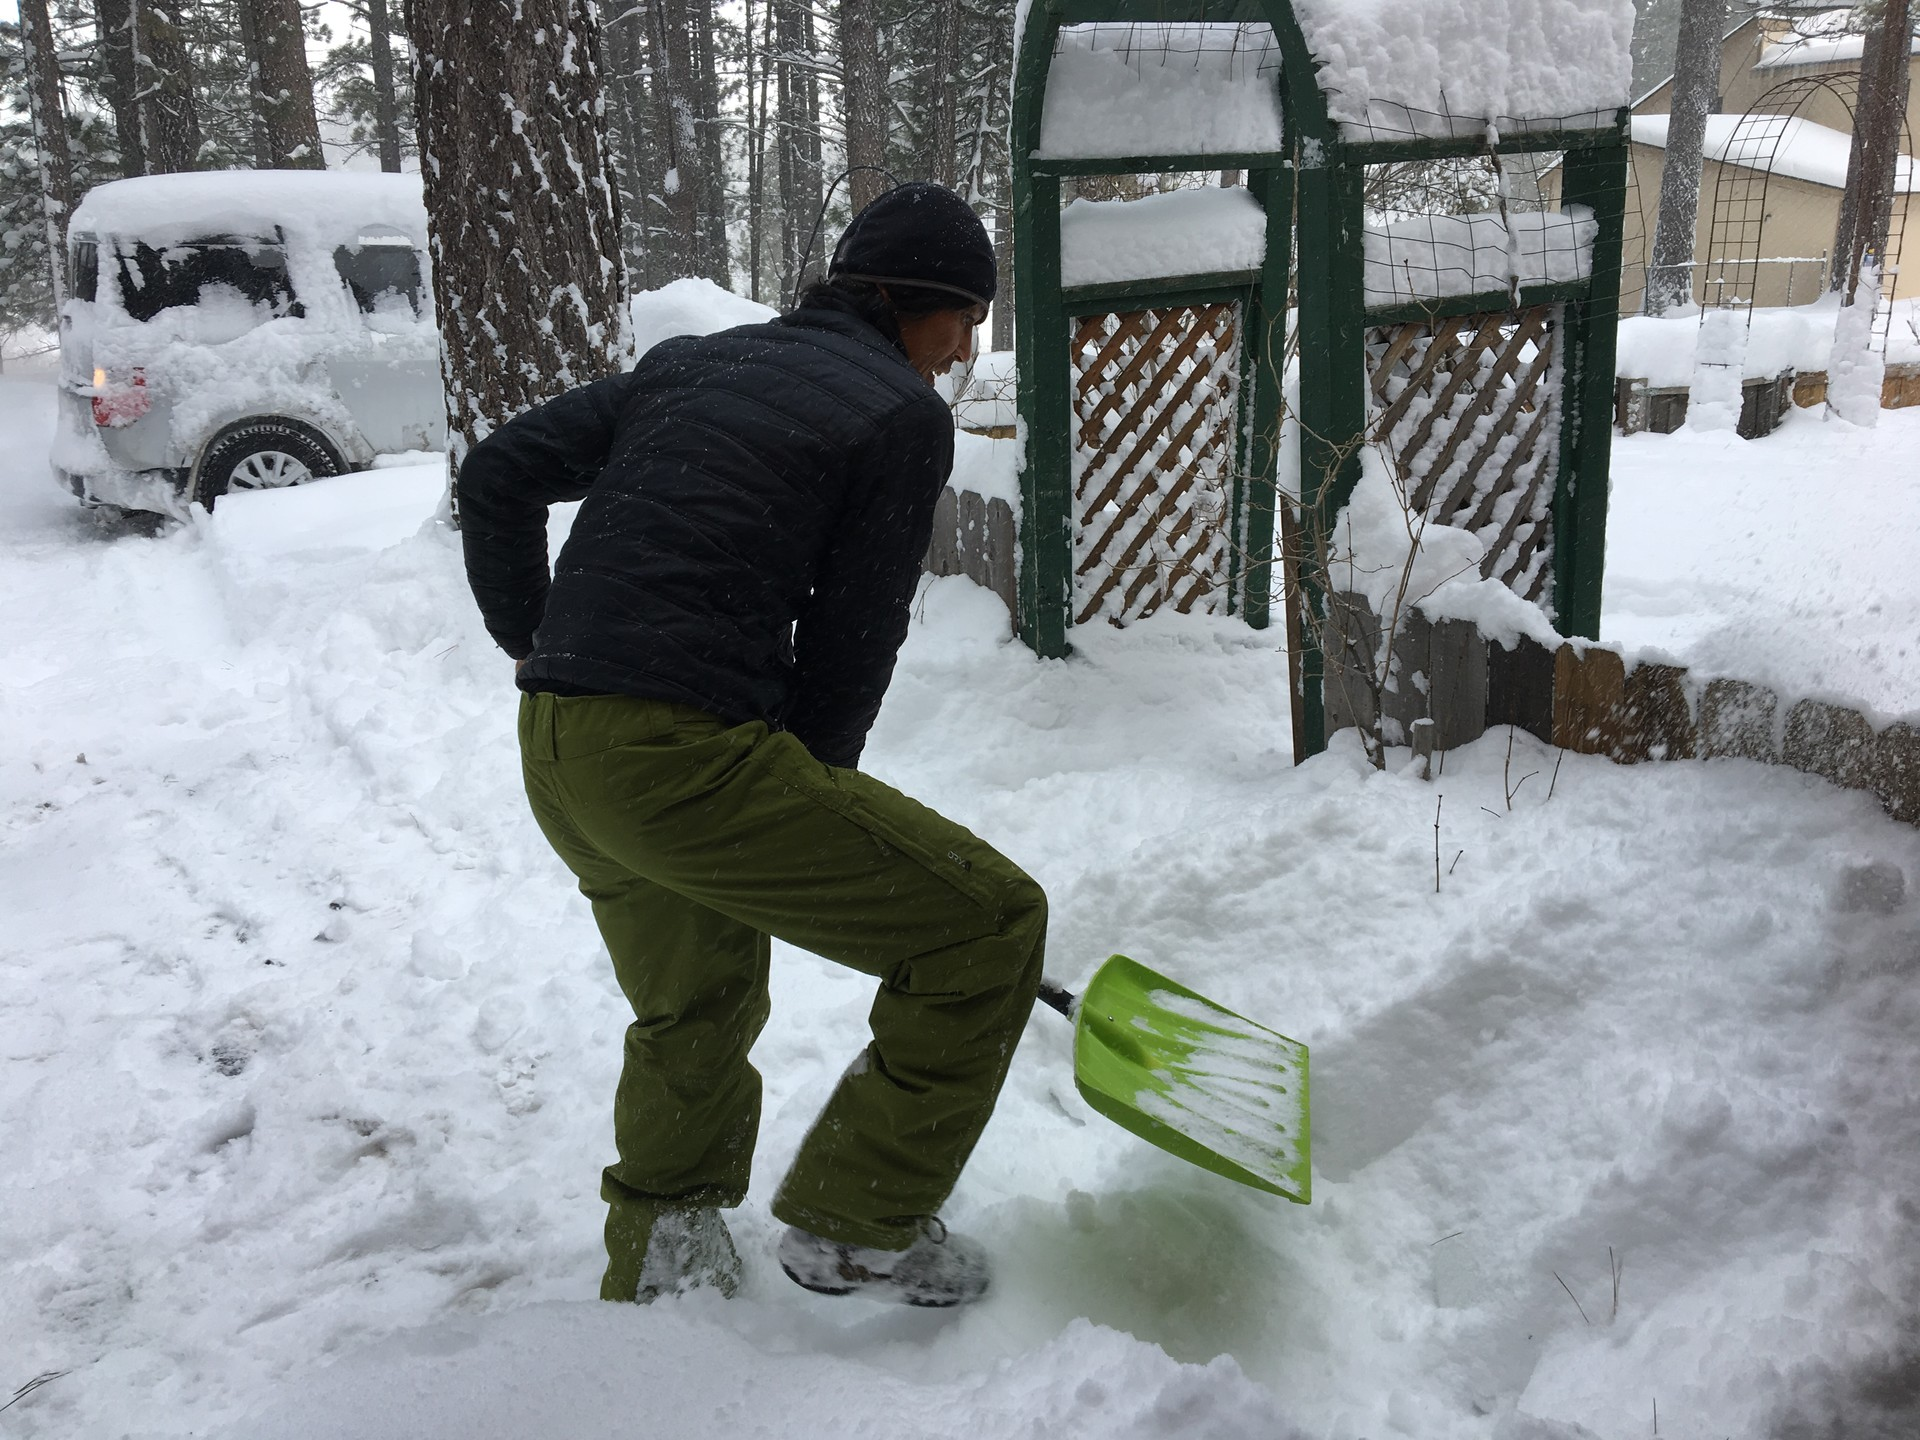 Jin Joo shovels his driveway near Lake Tahoe after a blizzard dumped 3 feet (1 meter) of snow in the Sierra Nevadas.